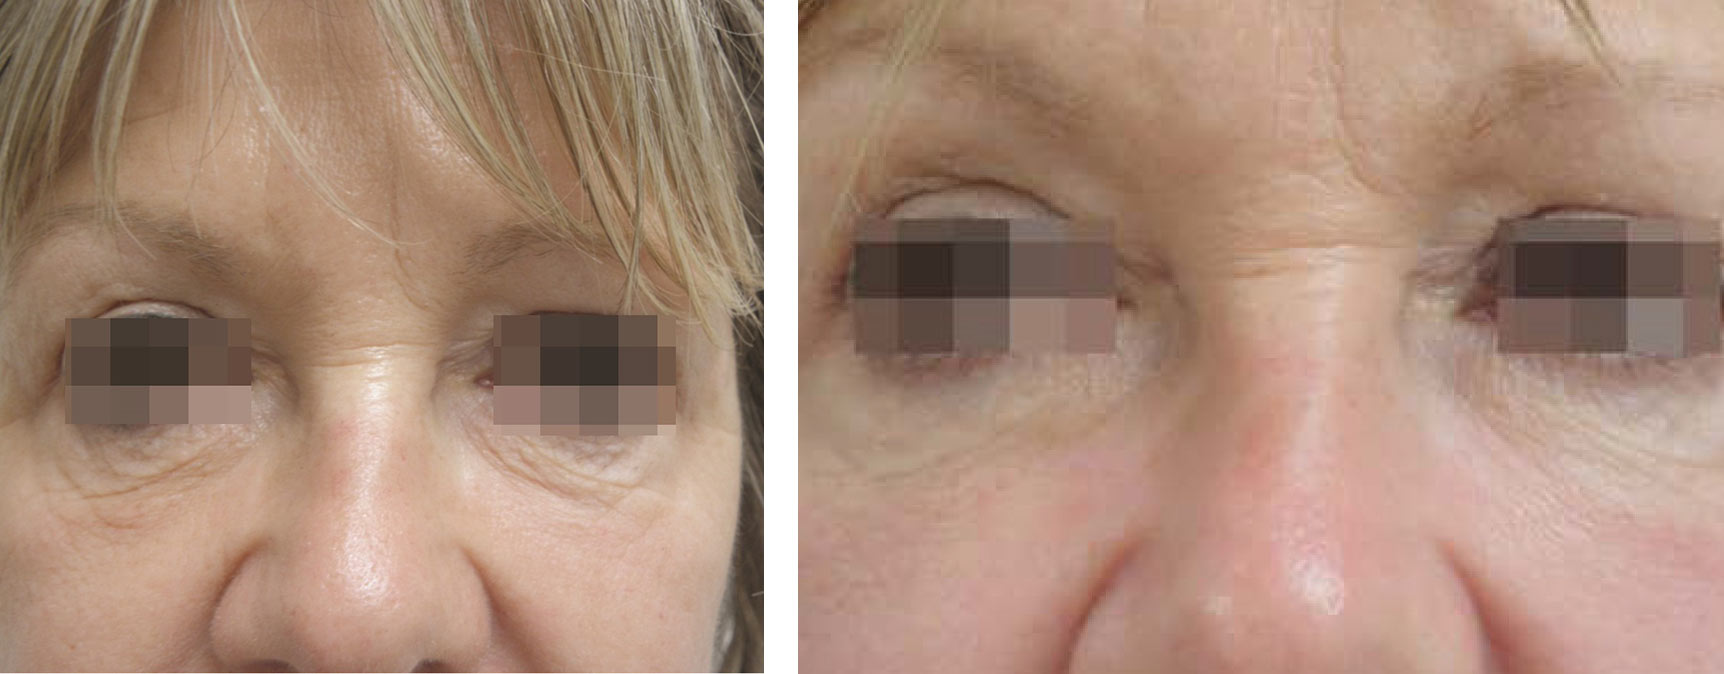 Intensif Microneedling with Radio Frequency Before and After 4